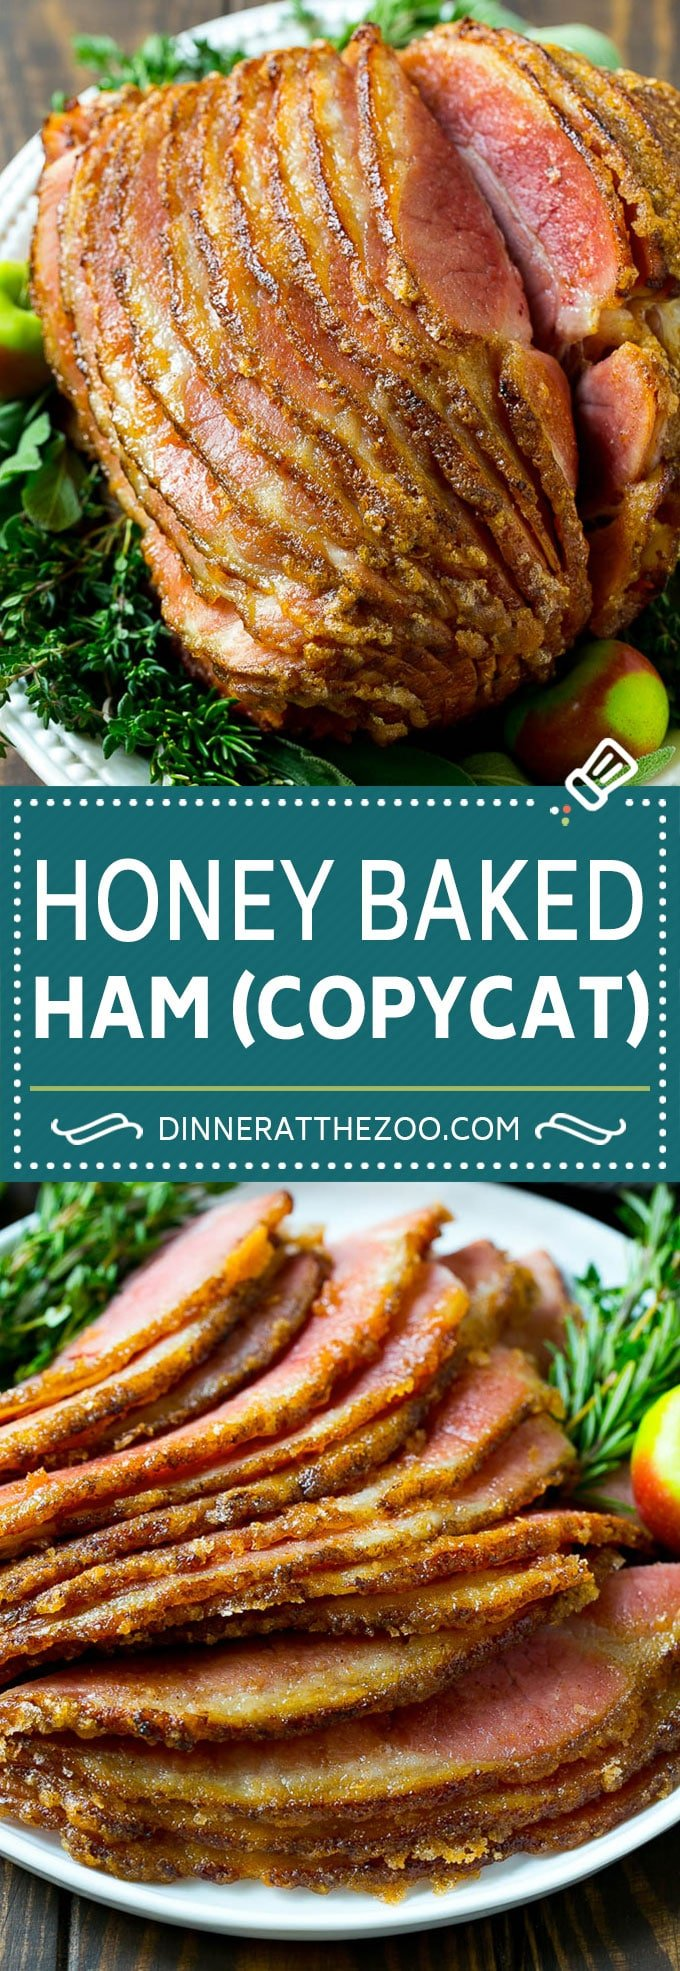 Honey Baked Ham Recipe | Glazed Ham | Holiday Ham #ham #dinner #dinneratthezoo #christmas #thanksgiving #easter